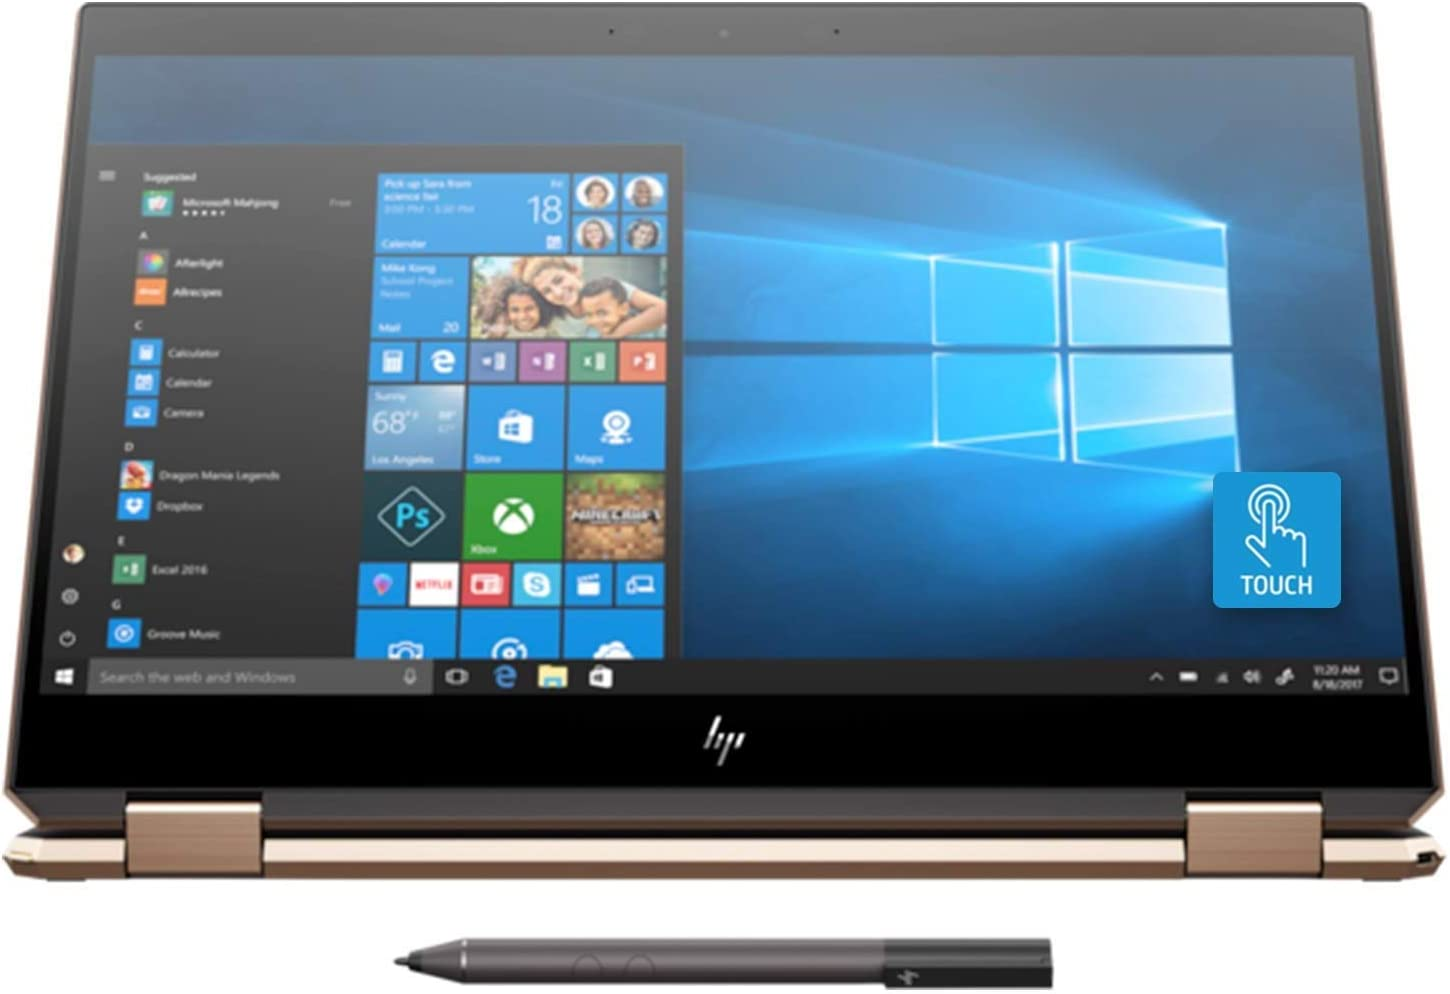 2019 HP Spectre x360 15t Touch 4K IPS NVIDIA GTX 1650 with 6 core 9th Gen Intel i7 9750H, 1TB SSD, 16GB,3 Years McAfee Internet Security, 2-in-1,Windows 10 PRO Upgrade Key,Worldwide Warranty(Dark Ash)